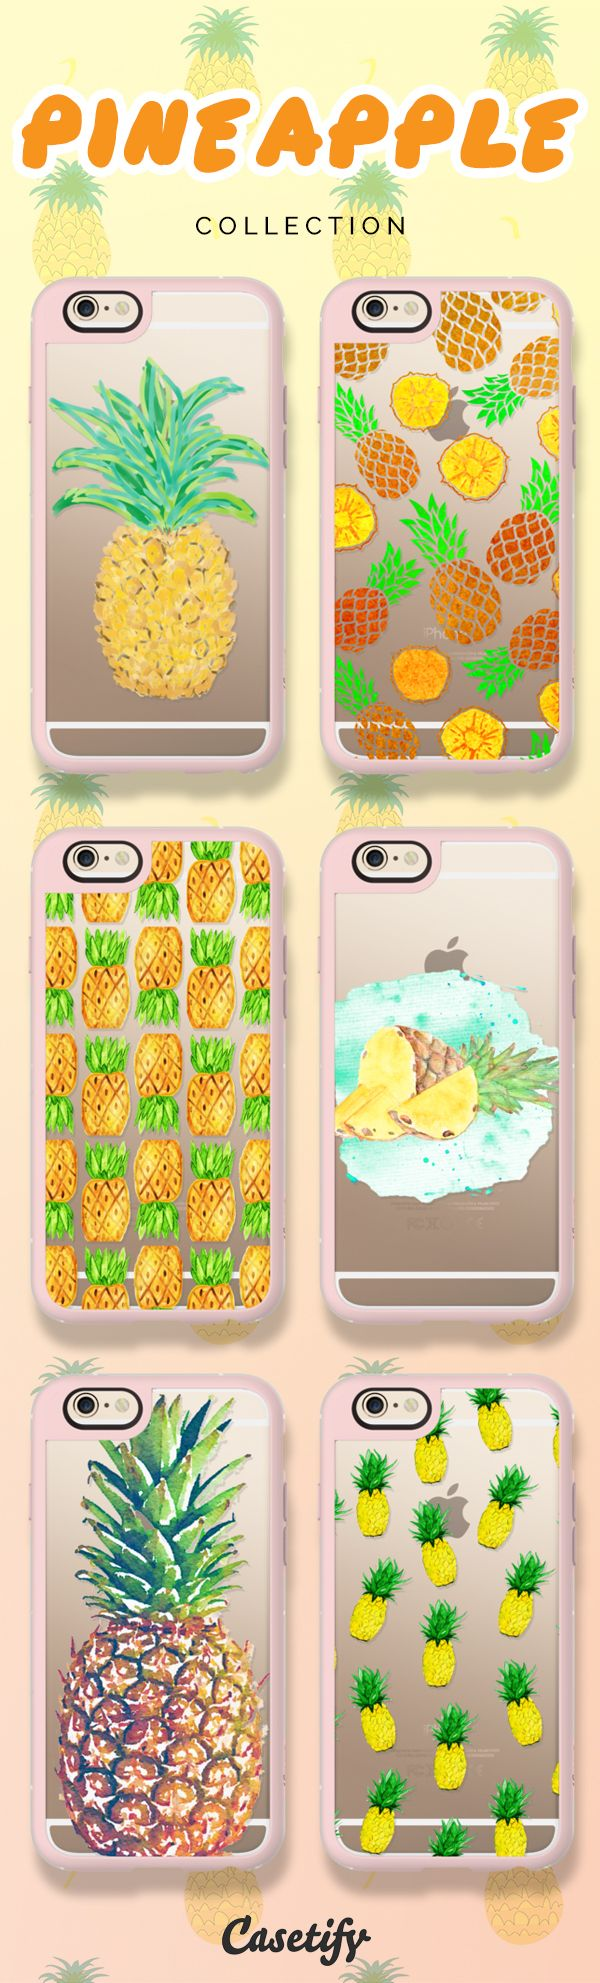 Be a pineapple: Stand tall, wear a crown, and be sweet on the inside! Shop these pineapple cases on our site now! https://www.casetify.com/search?keyword=pineapple | @casetify